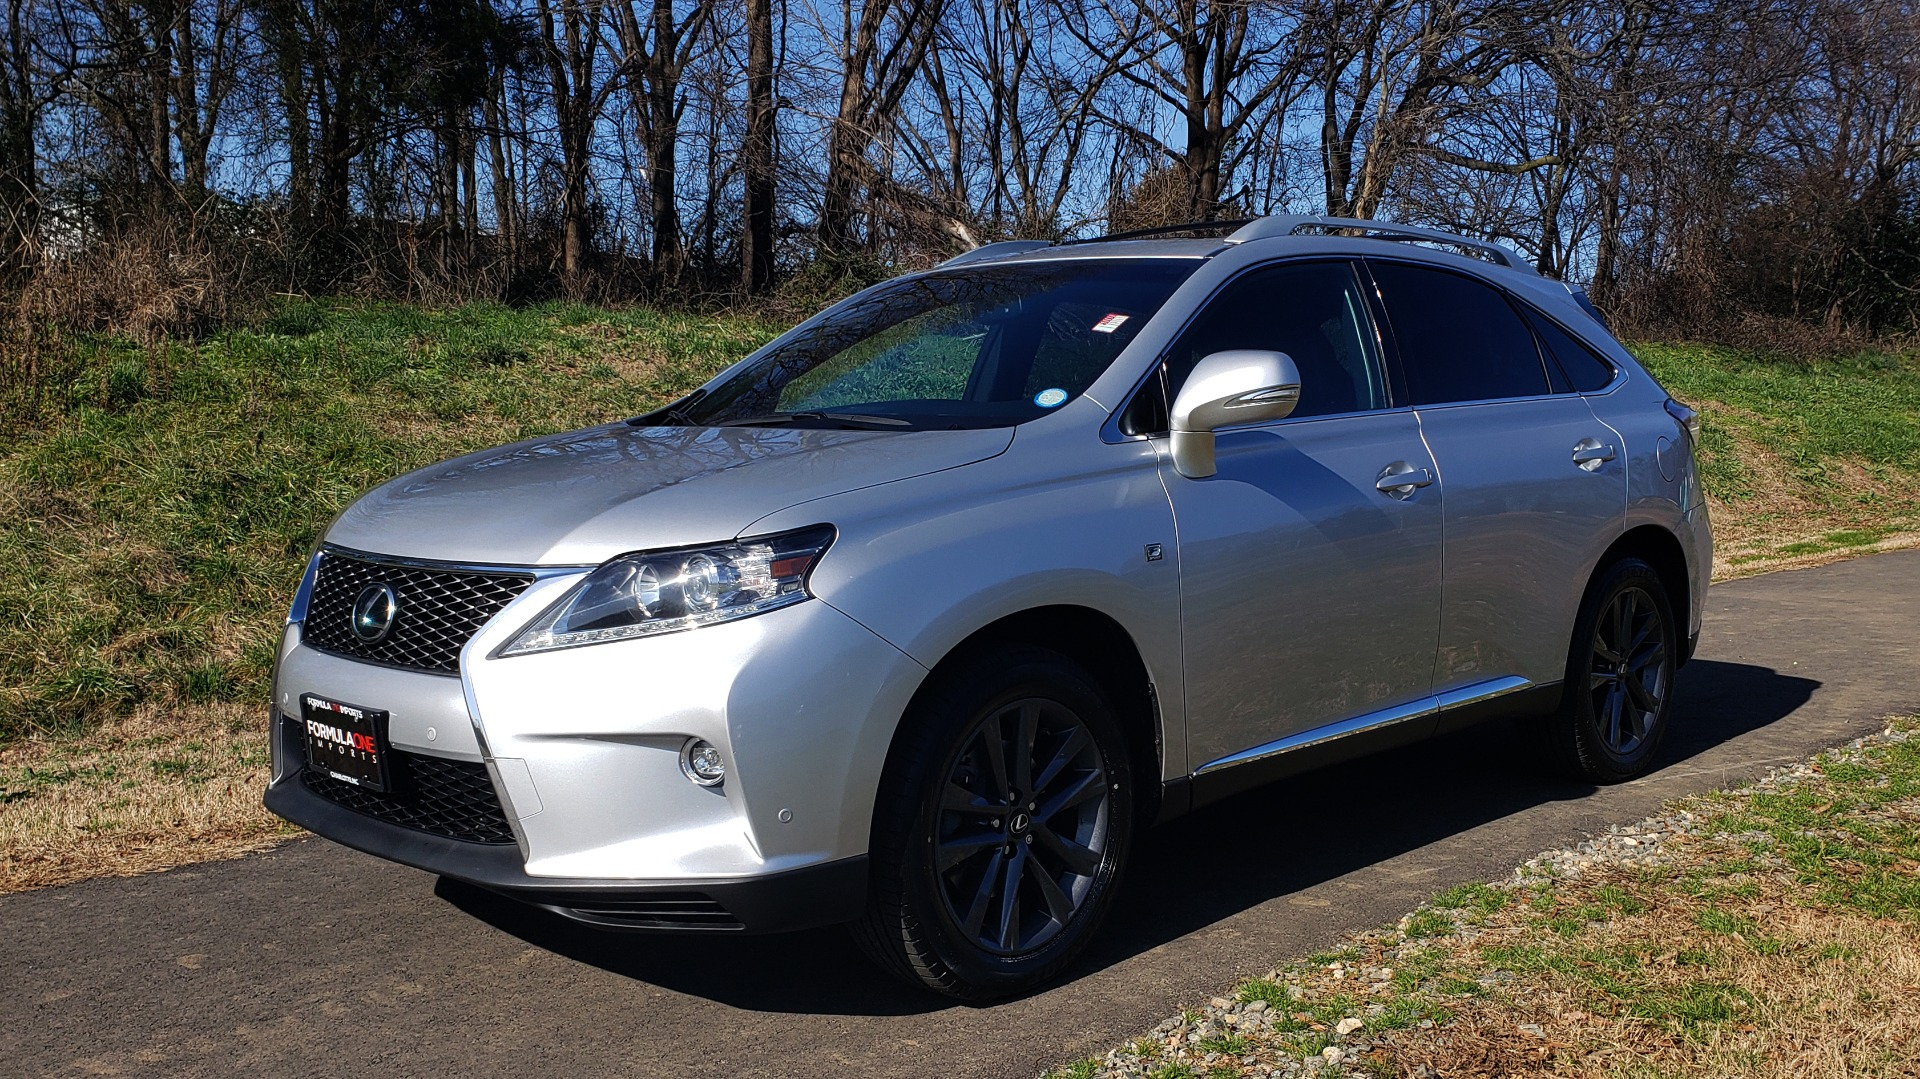 Used 2015 Lexus RX350 AWD F-SPORT / NAV / SUNROOF / BSM / PARK ASST / REARVIEW for sale Sold at Formula Imports in Charlotte NC 28227 1